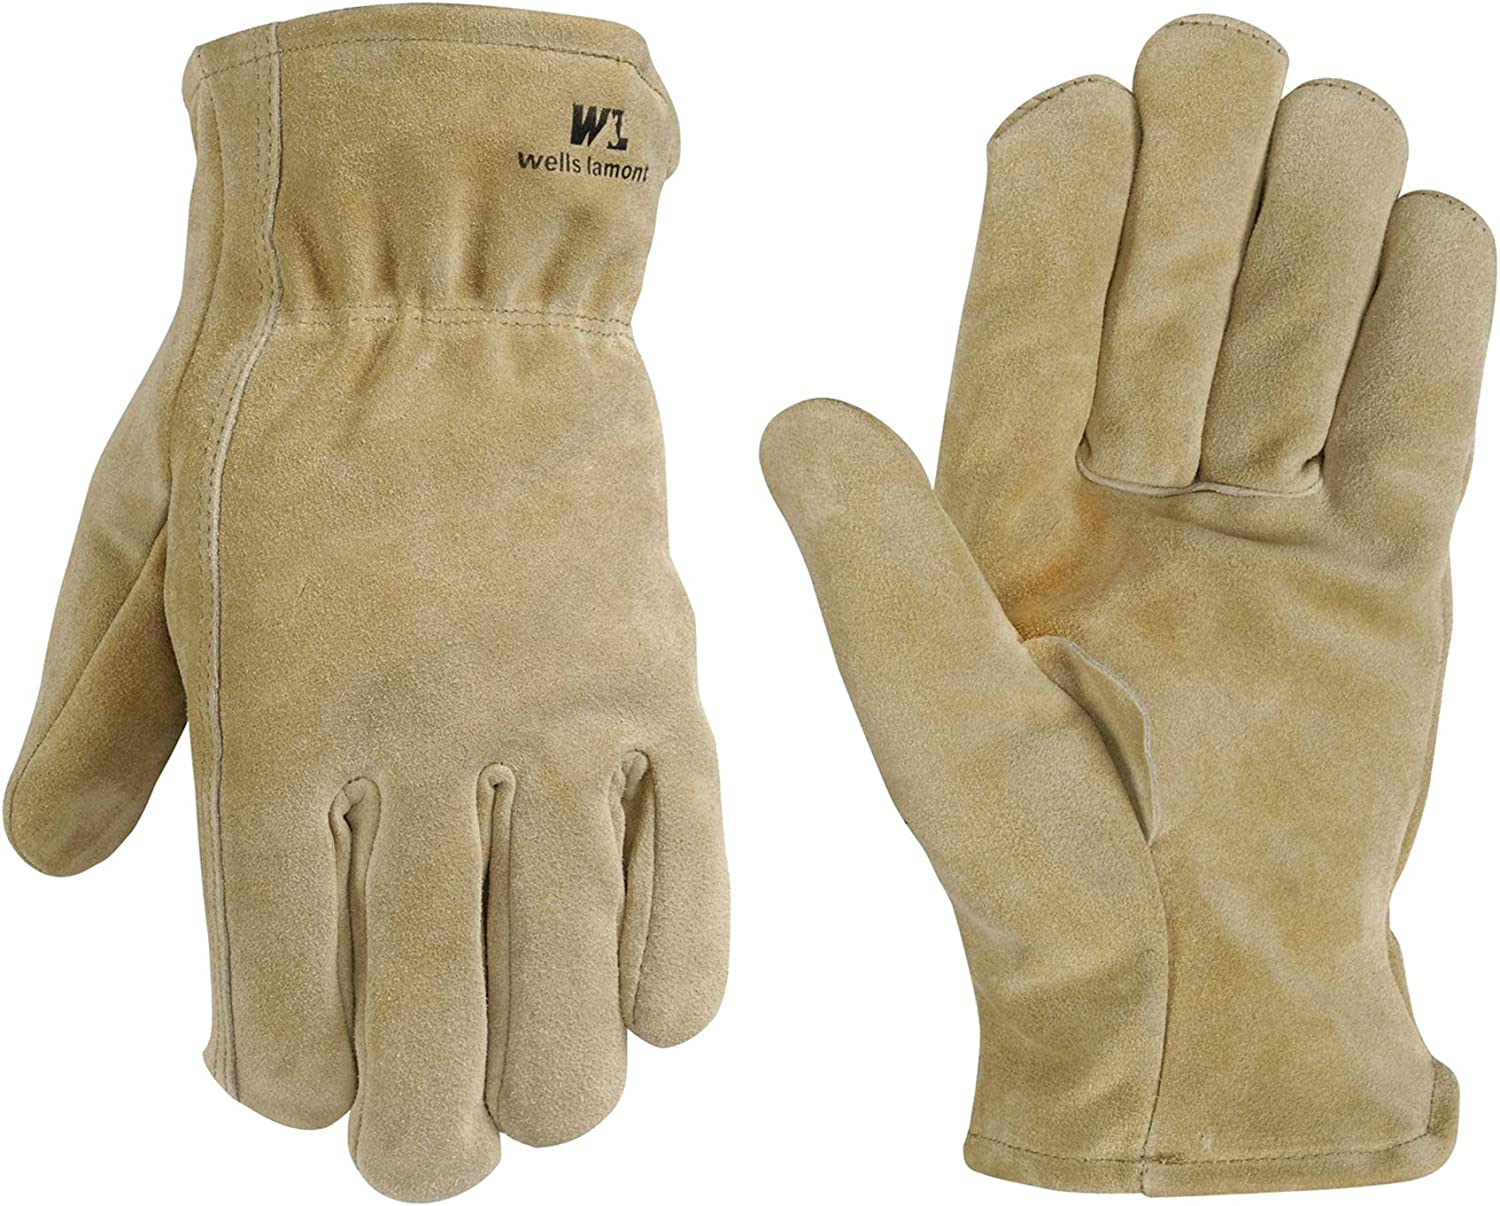 Leather Winter Work Gloves Don't miss the campaign Spli Thinsulate 100-gram Philadelphia Mall Insulation